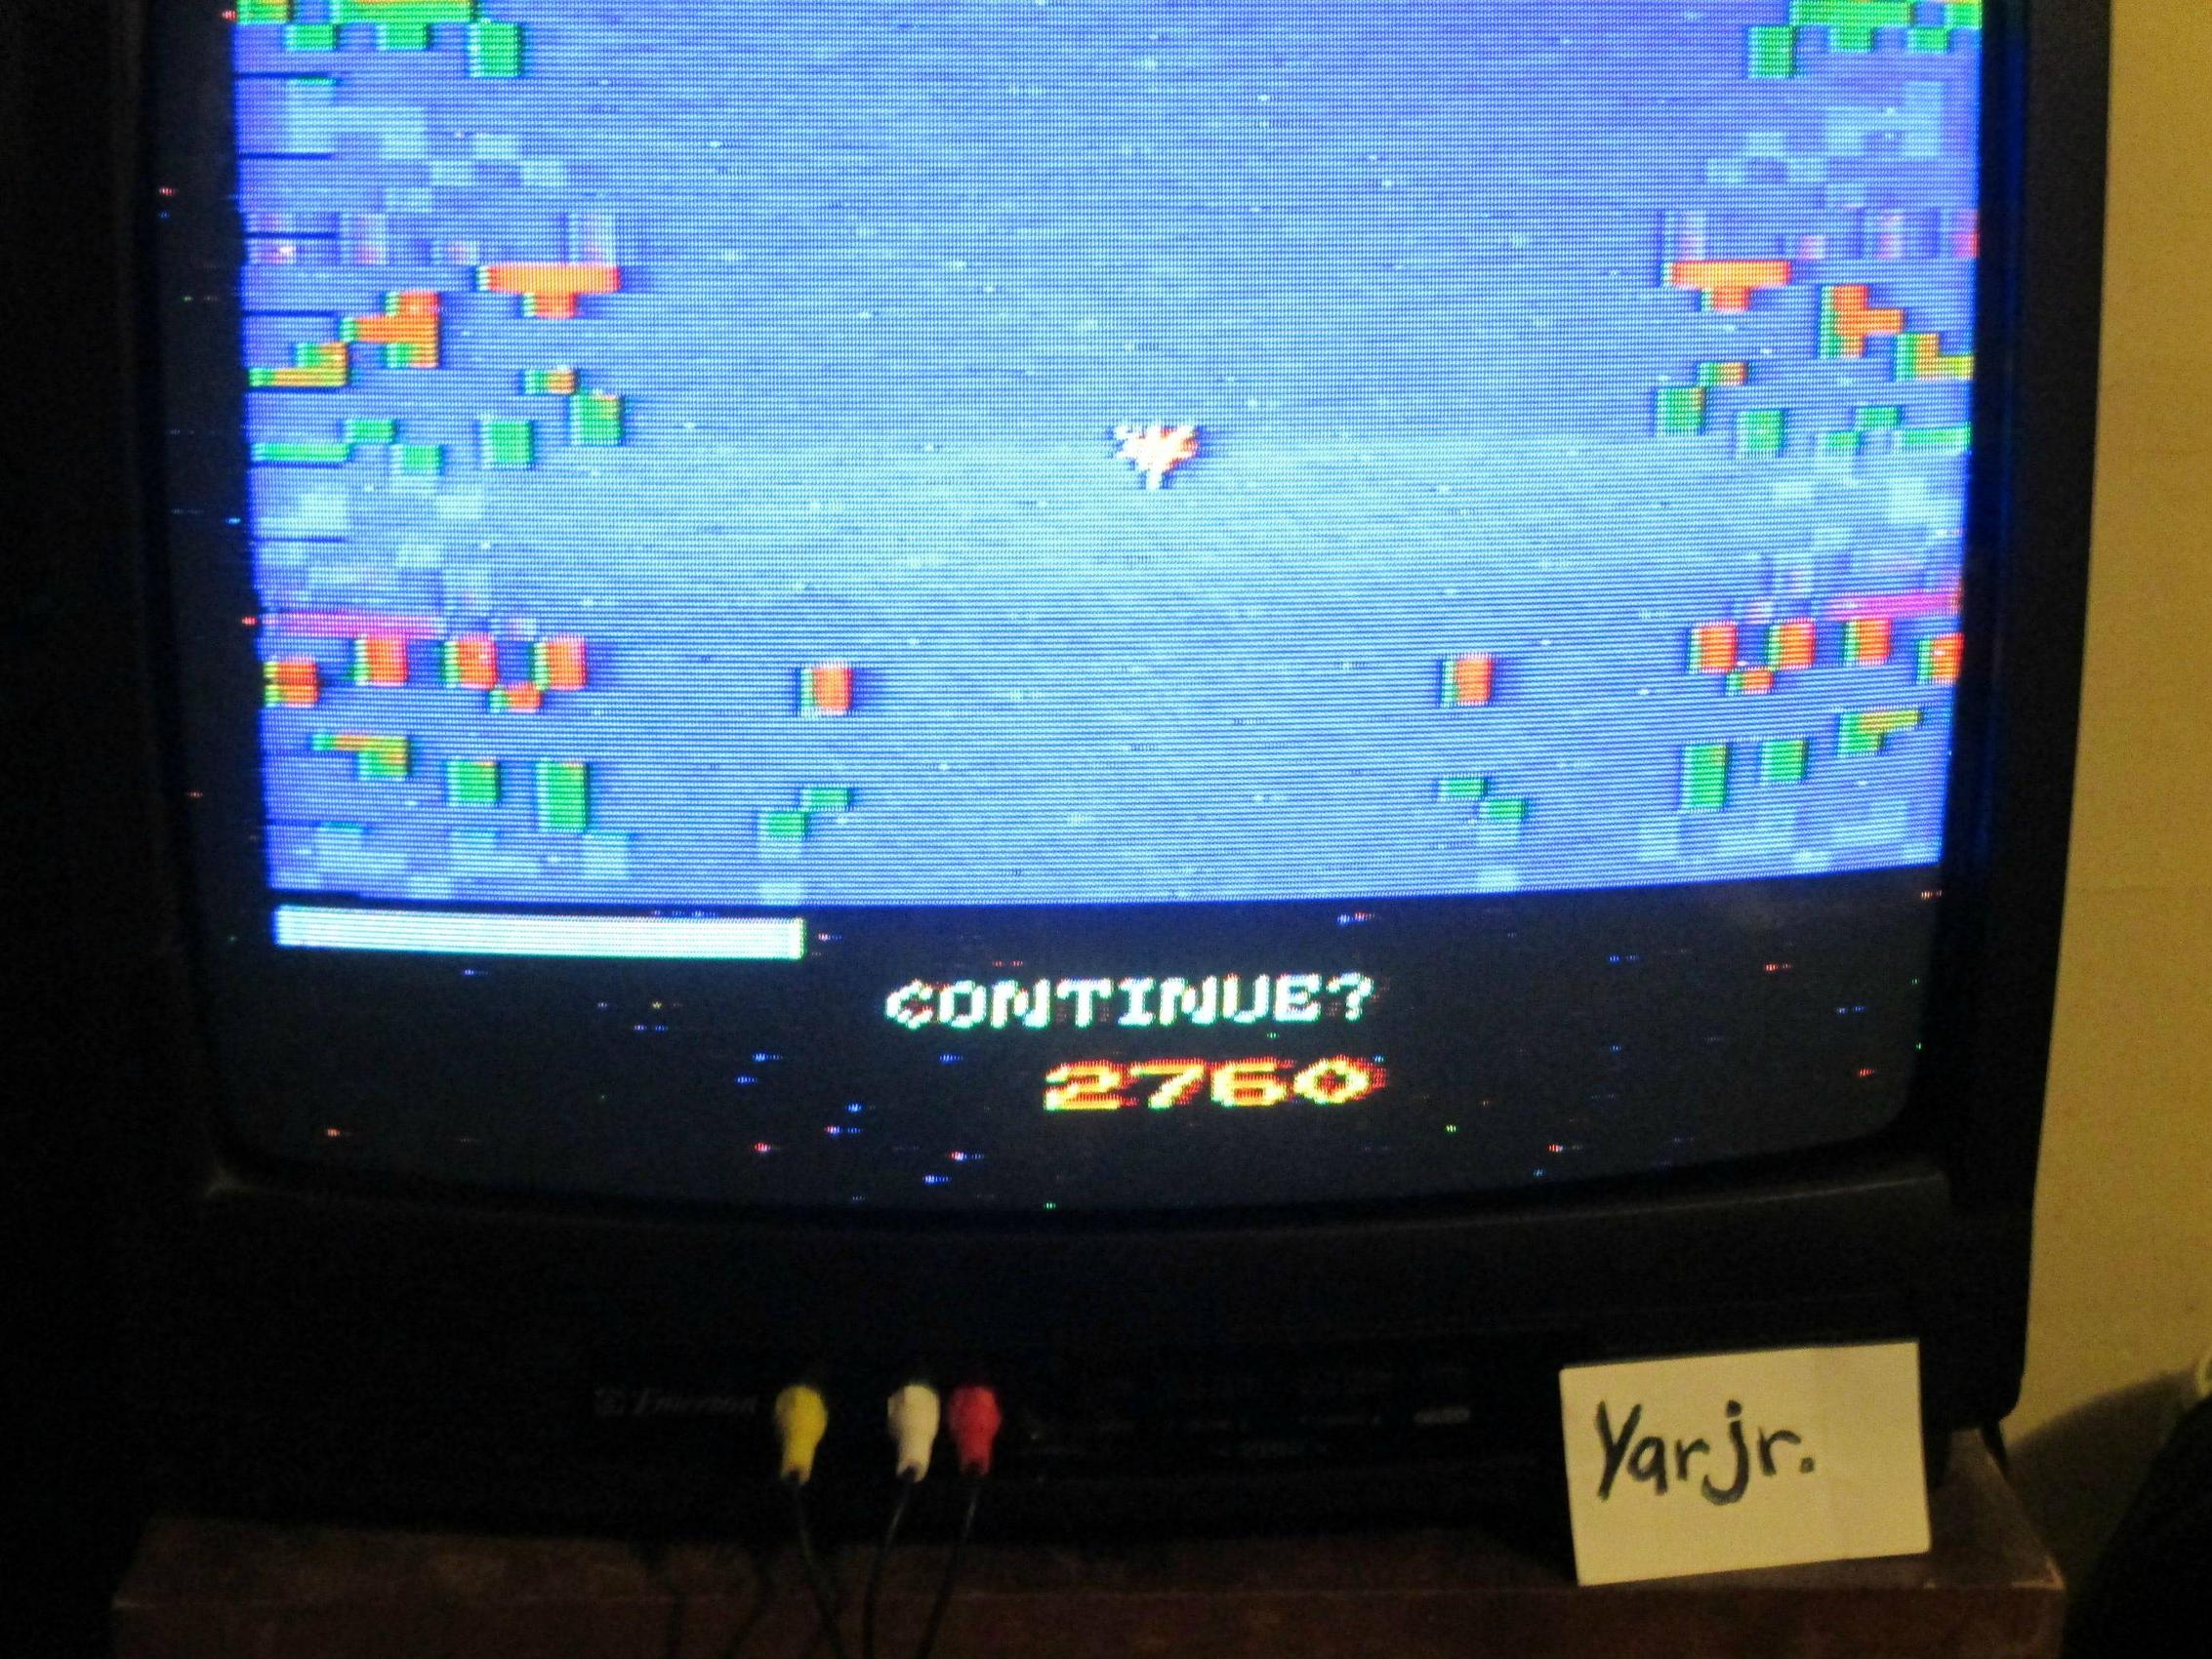 yarjr: Vanguard (Atari 2600 Novice/B) 2,760 points on 2013-09-05 00:34:02